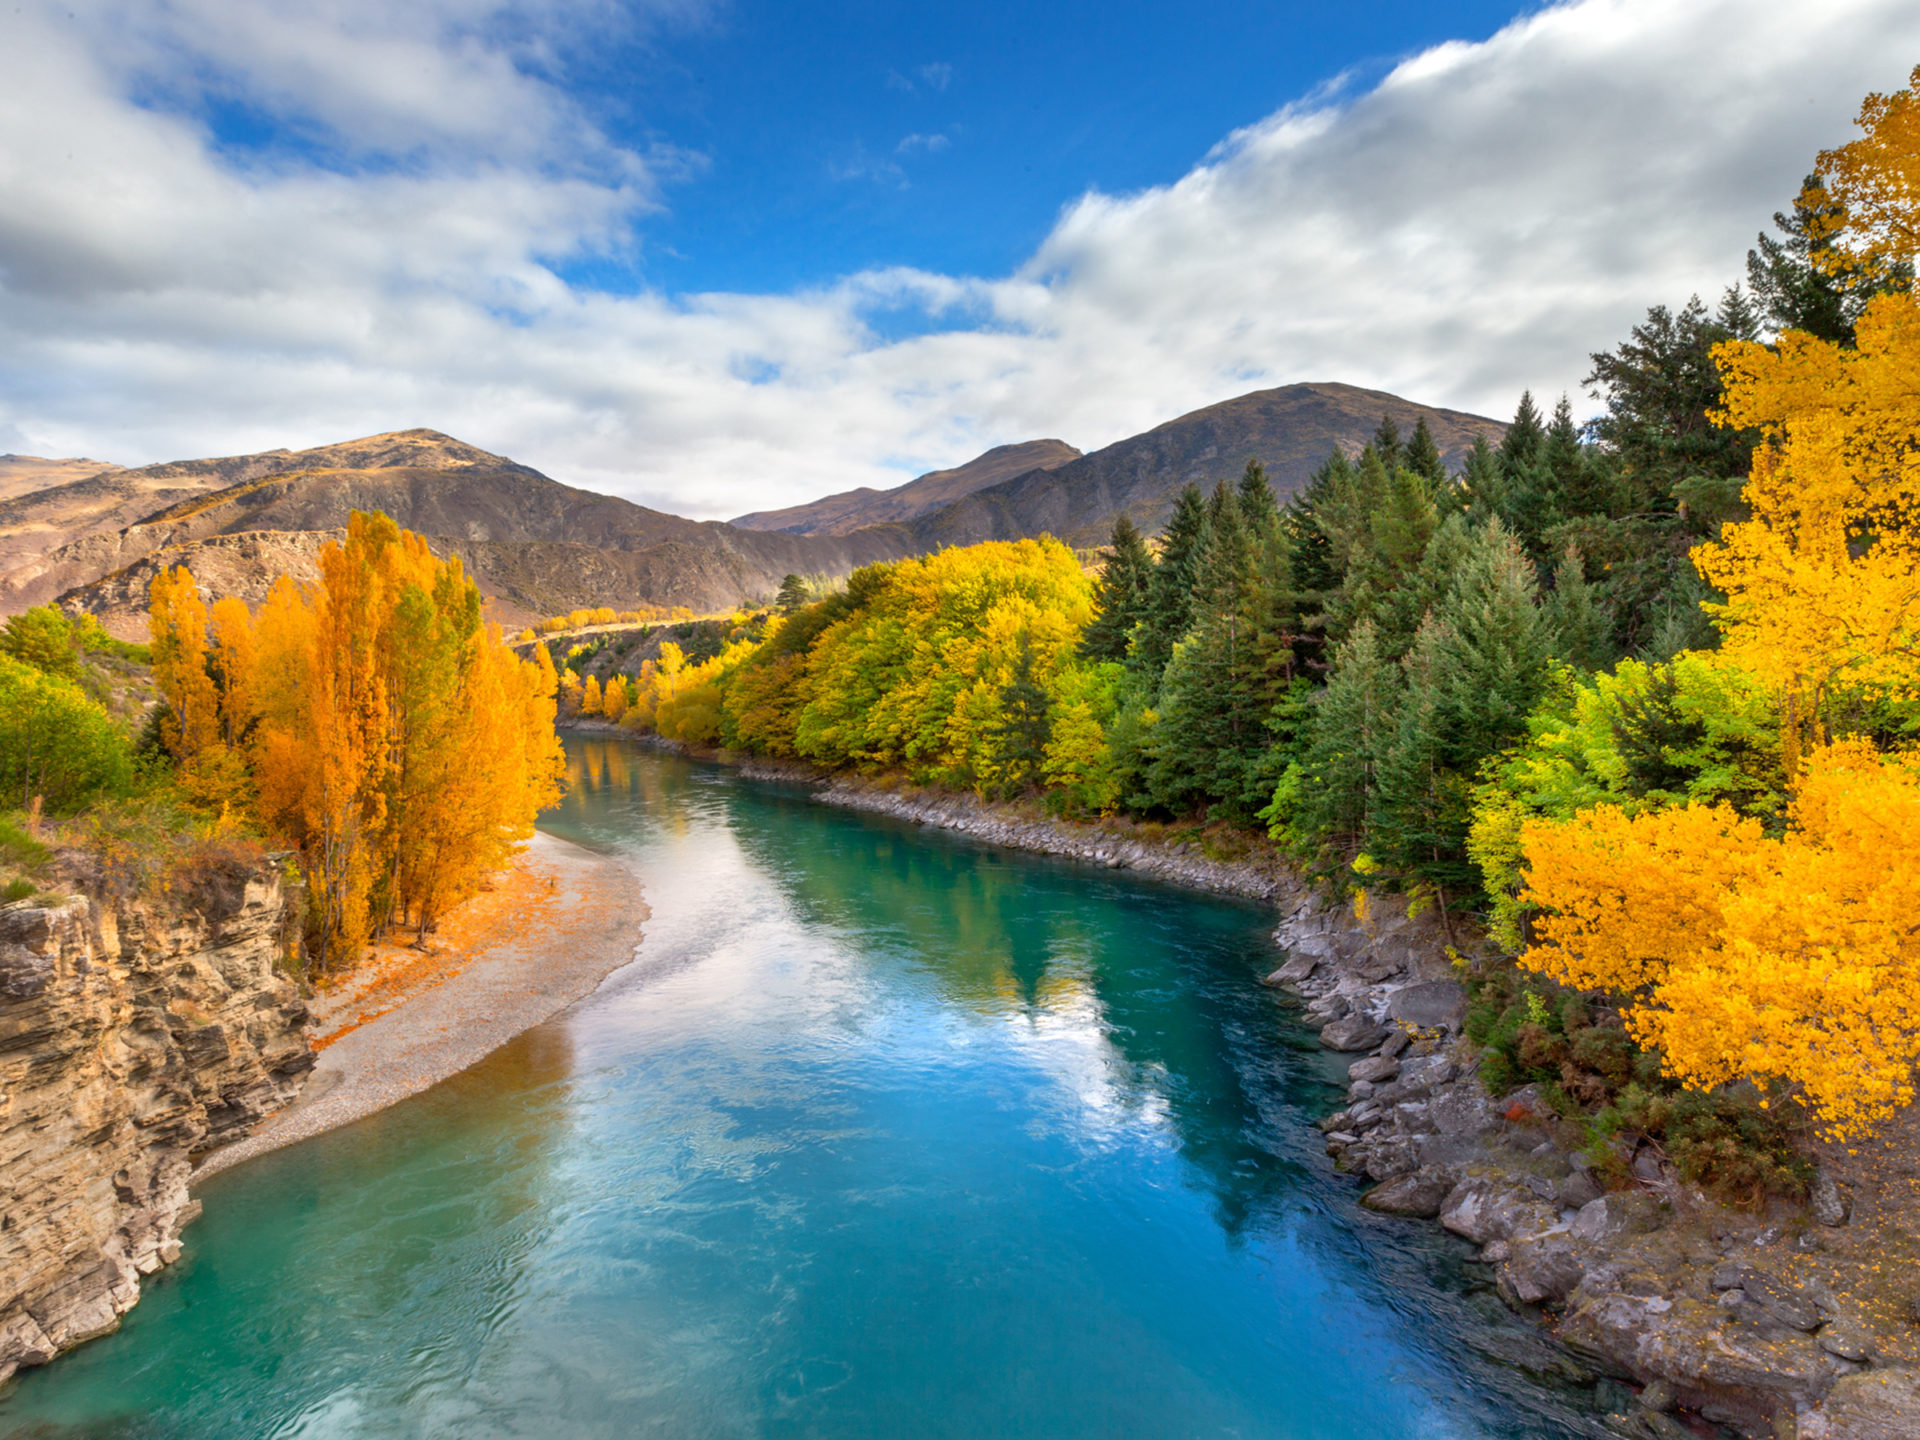 Fall Desktop Wallpaper 1920x1080 Landscape Wallpaper Hd Emerald River Queenstown New